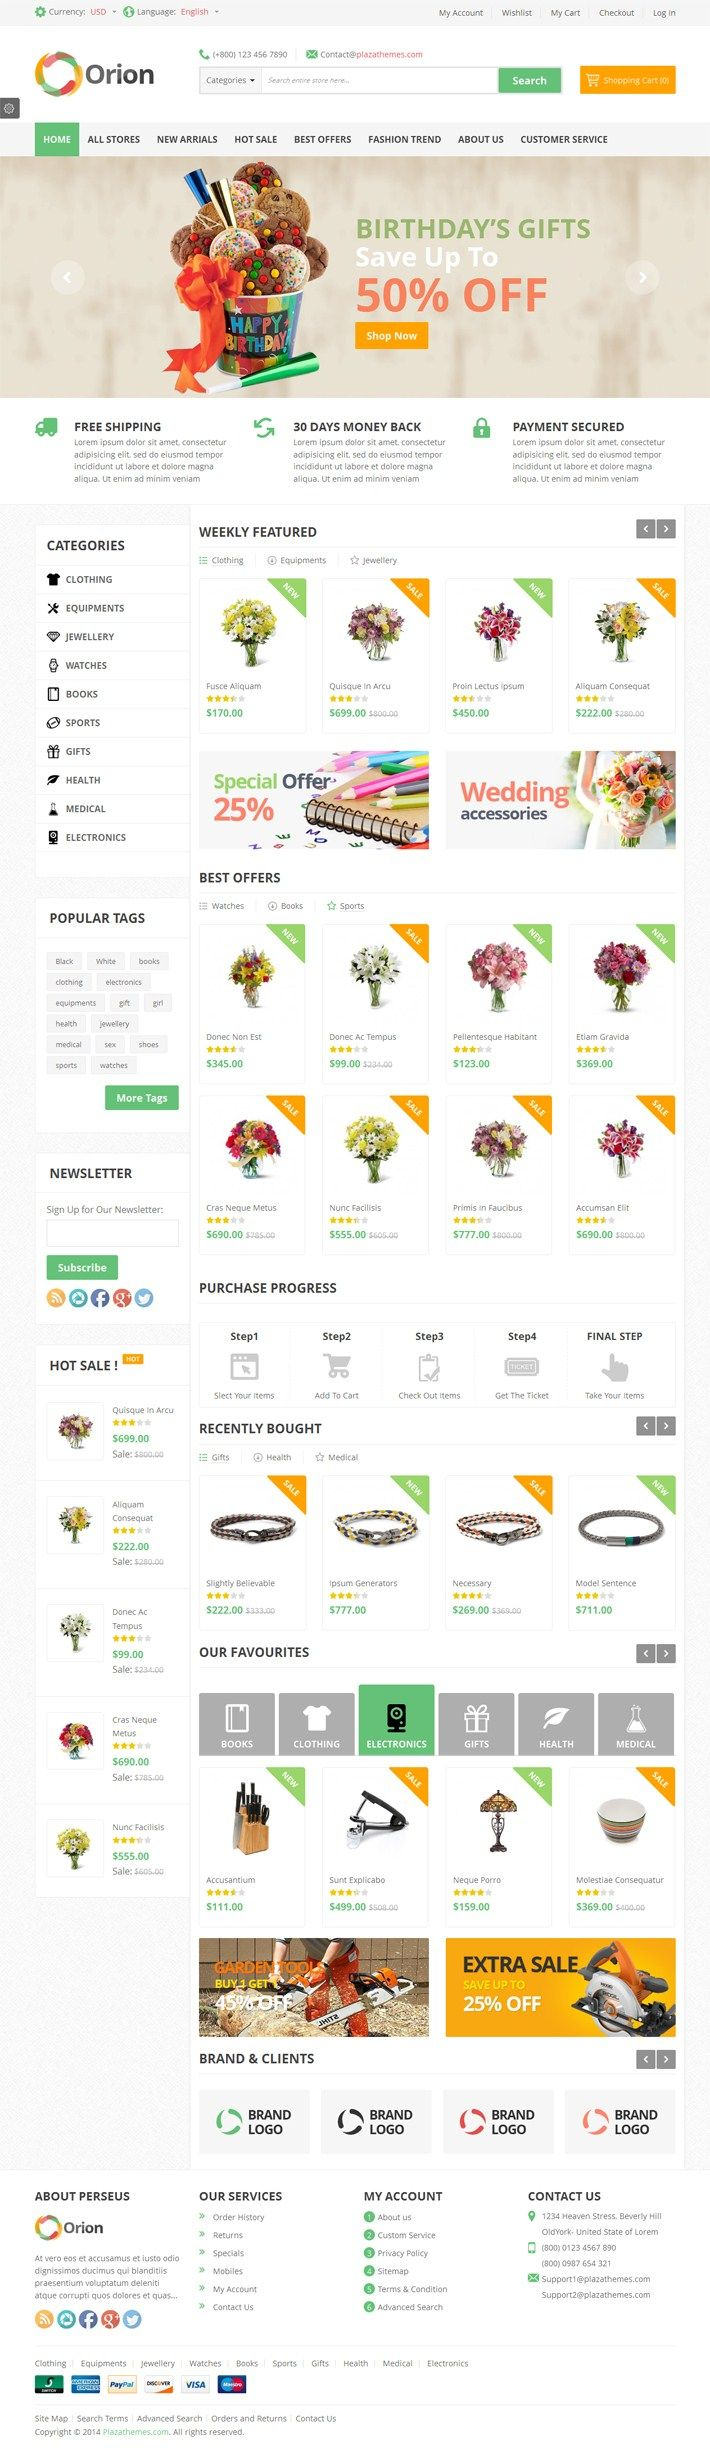 Orion – Mega Shop Responsive Magento Them